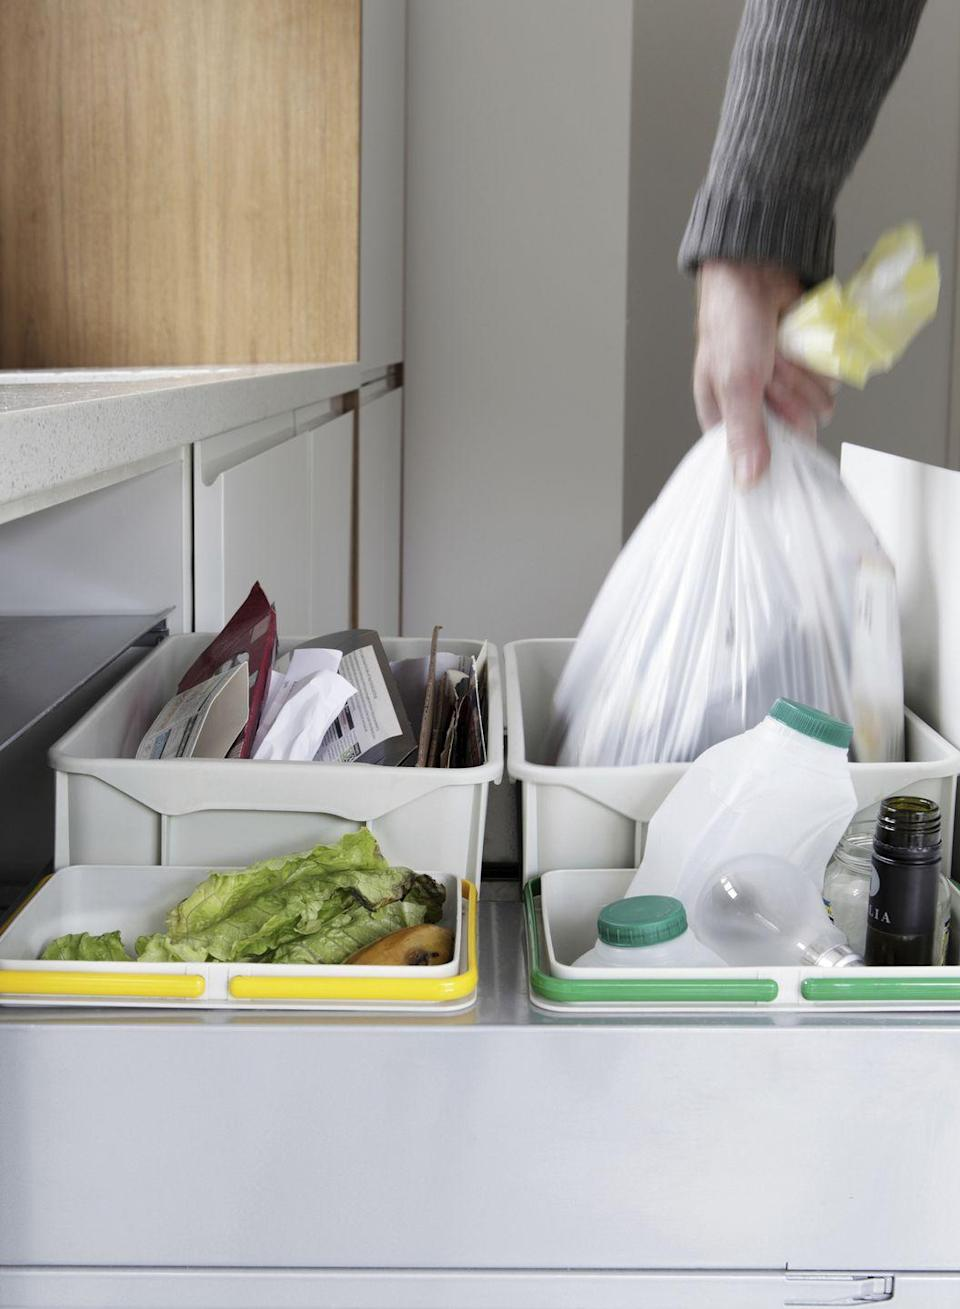 "<p>Make this the year when you really get to grips with recycling. Place bins and bags in a spot where they are easily reached, and if collection facilities are not readily available, set a regular weekly time when you take everything to your local recycling centre.</p><p>You can separate your household waste with ease by investing in clearly labelled recycling bags (<a href=""https://www.amazon.co.uk/dp/B01NBJQHVT/?tag=hearstuk-yahoo-21&ascsubtag=%5Bartid%7C2060.g.185%5Bsrc%7Cyahoo-uk"" rel=""nofollow noopener"" target=""_blank"" data-ylk=""slk:try this set from Amazon"" class=""link rapid-noclick-resp"">try this set from Amazon</a>) or a nifty recycling unit (<a href=""https://go.redirectingat.com?id=127X1599956&url=https%3A%2F%2Fwww.josephjoseph.com%2Fen-gb%2Ftotem-58-recycler&sref=https%3A%2F%2Fwww.housebeautiful.com%2Fuk%2Flifestyle%2Fg185%2Fnew-years-resolutions-home%2F"" rel=""nofollow noopener"" target=""_blank"" data-ylk=""slk:Joseph Joseph stock a good range of waste & recycling bins"" class=""link rapid-noclick-resp"">Joseph Joseph stock a good range of waste & recycling bins</a>).</p><p><strong>More: <a href=""http://www.housebeautiful.co.uk/lifestyle/eco/how-to/a234/recycle-more/"" rel=""nofollow noopener"" target=""_blank"" data-ylk=""slk:How to recycle more"" class=""link rapid-noclick-resp"">How to recycle more</a></strong></p>"